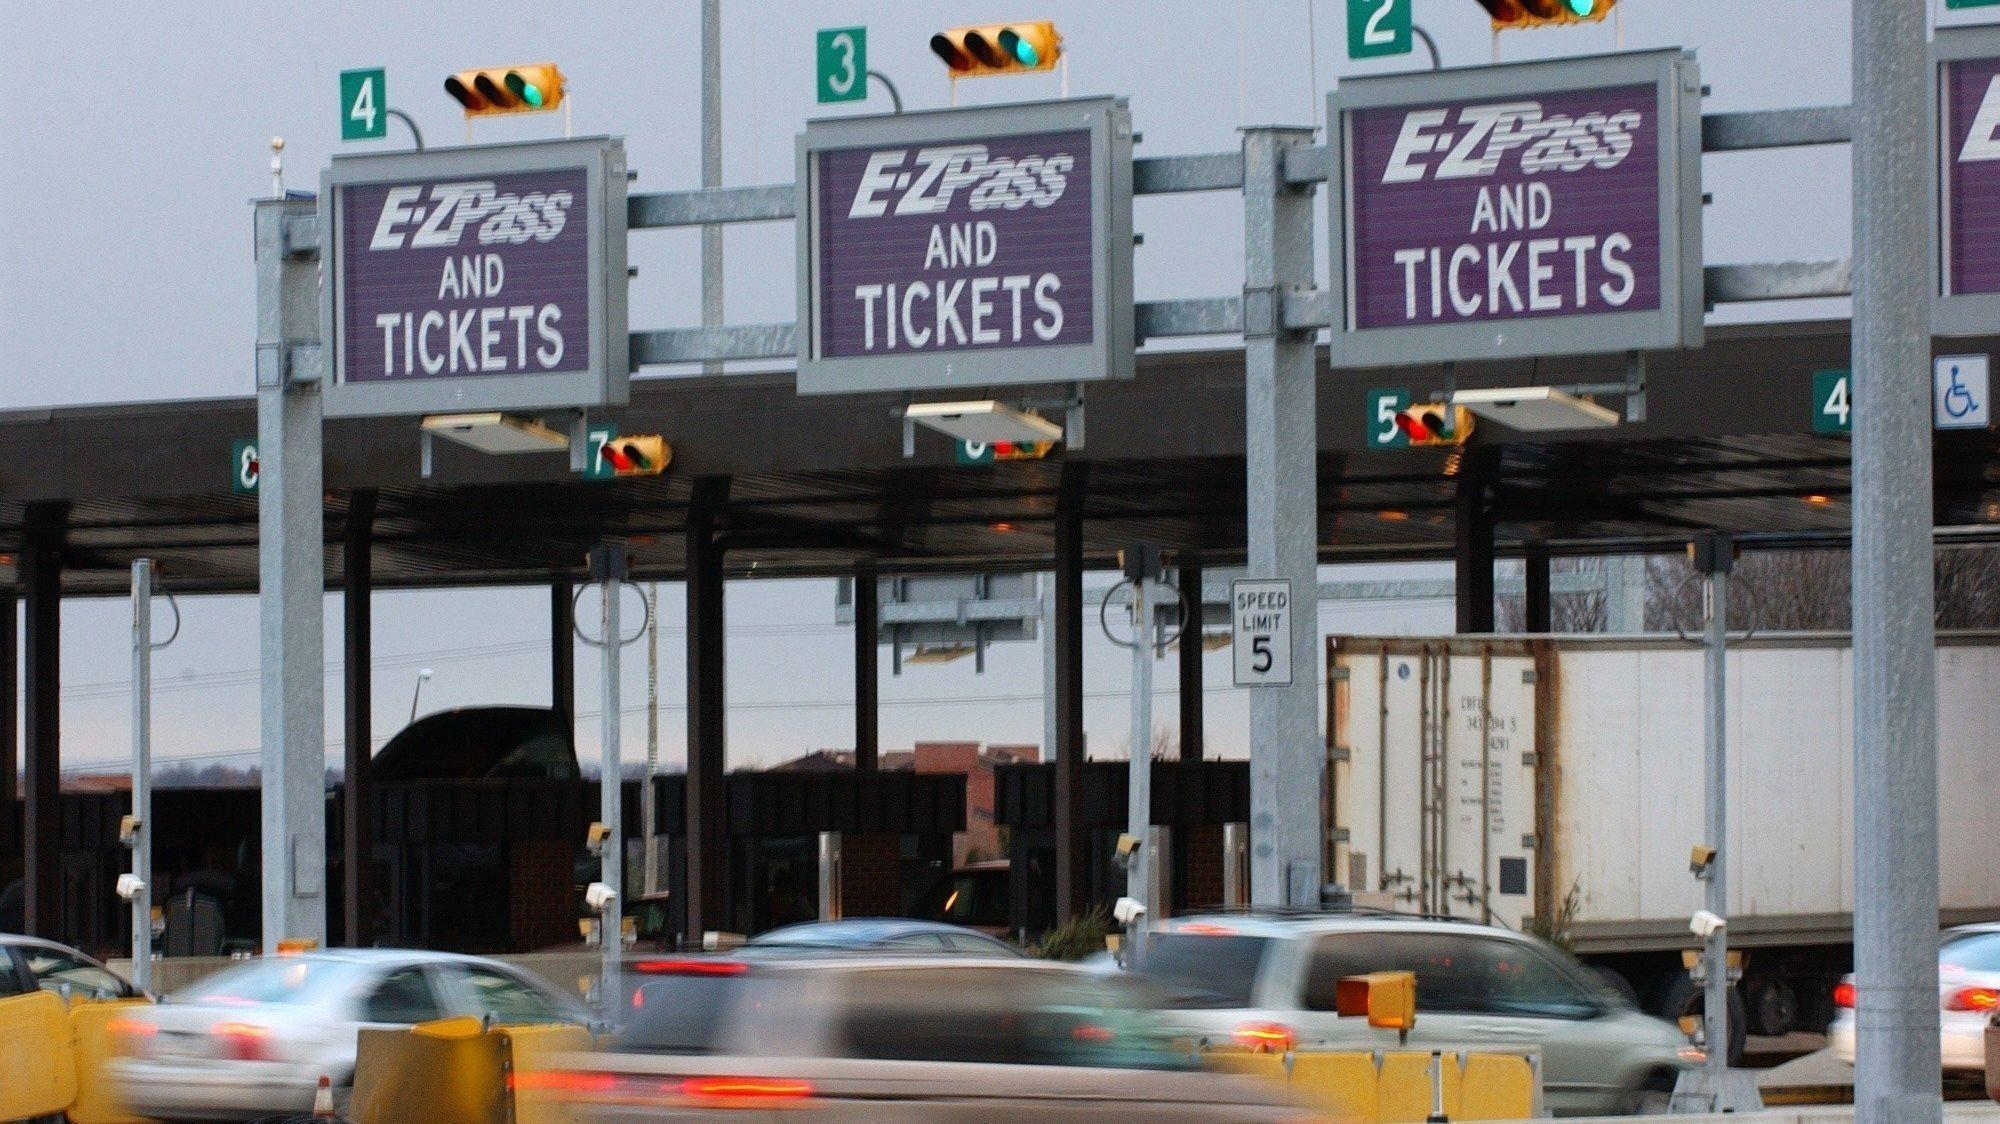 Traveling the Turnpike for the holidays? Here's how to have